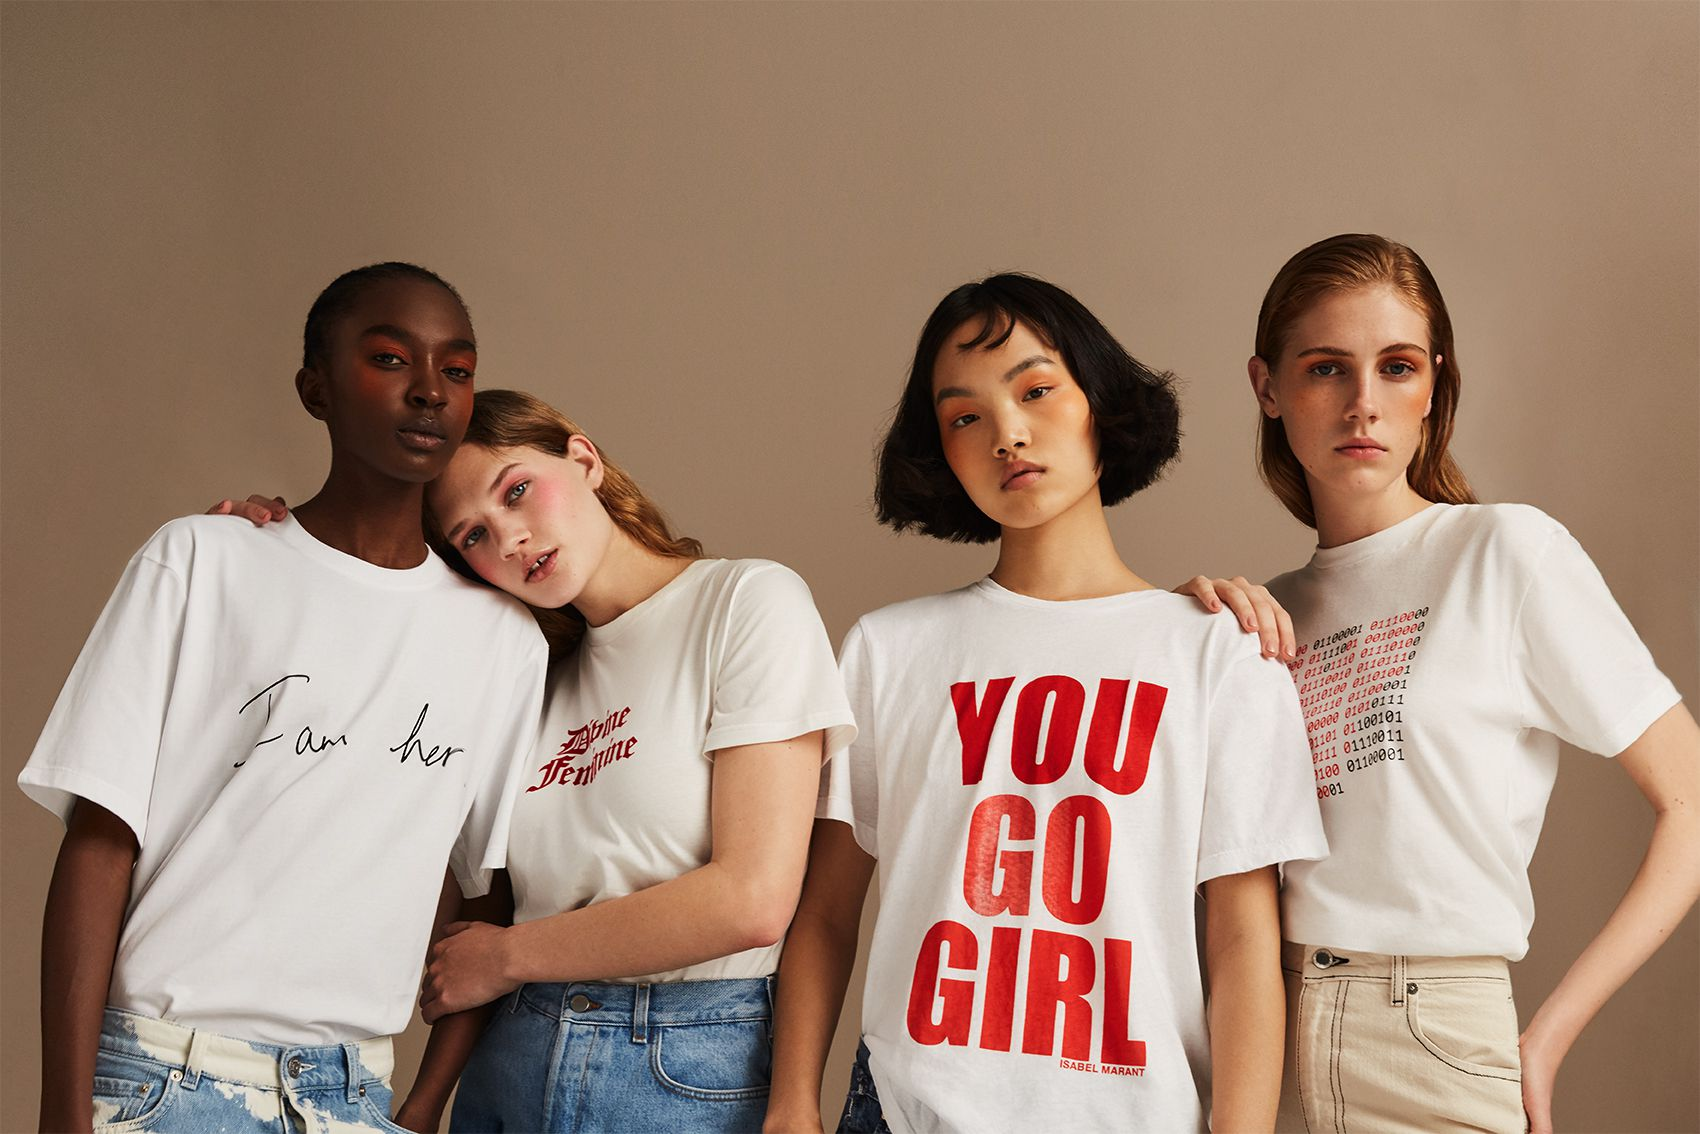 10 Brands Donating 100% of Their Women's Day Merch Sales to Charity